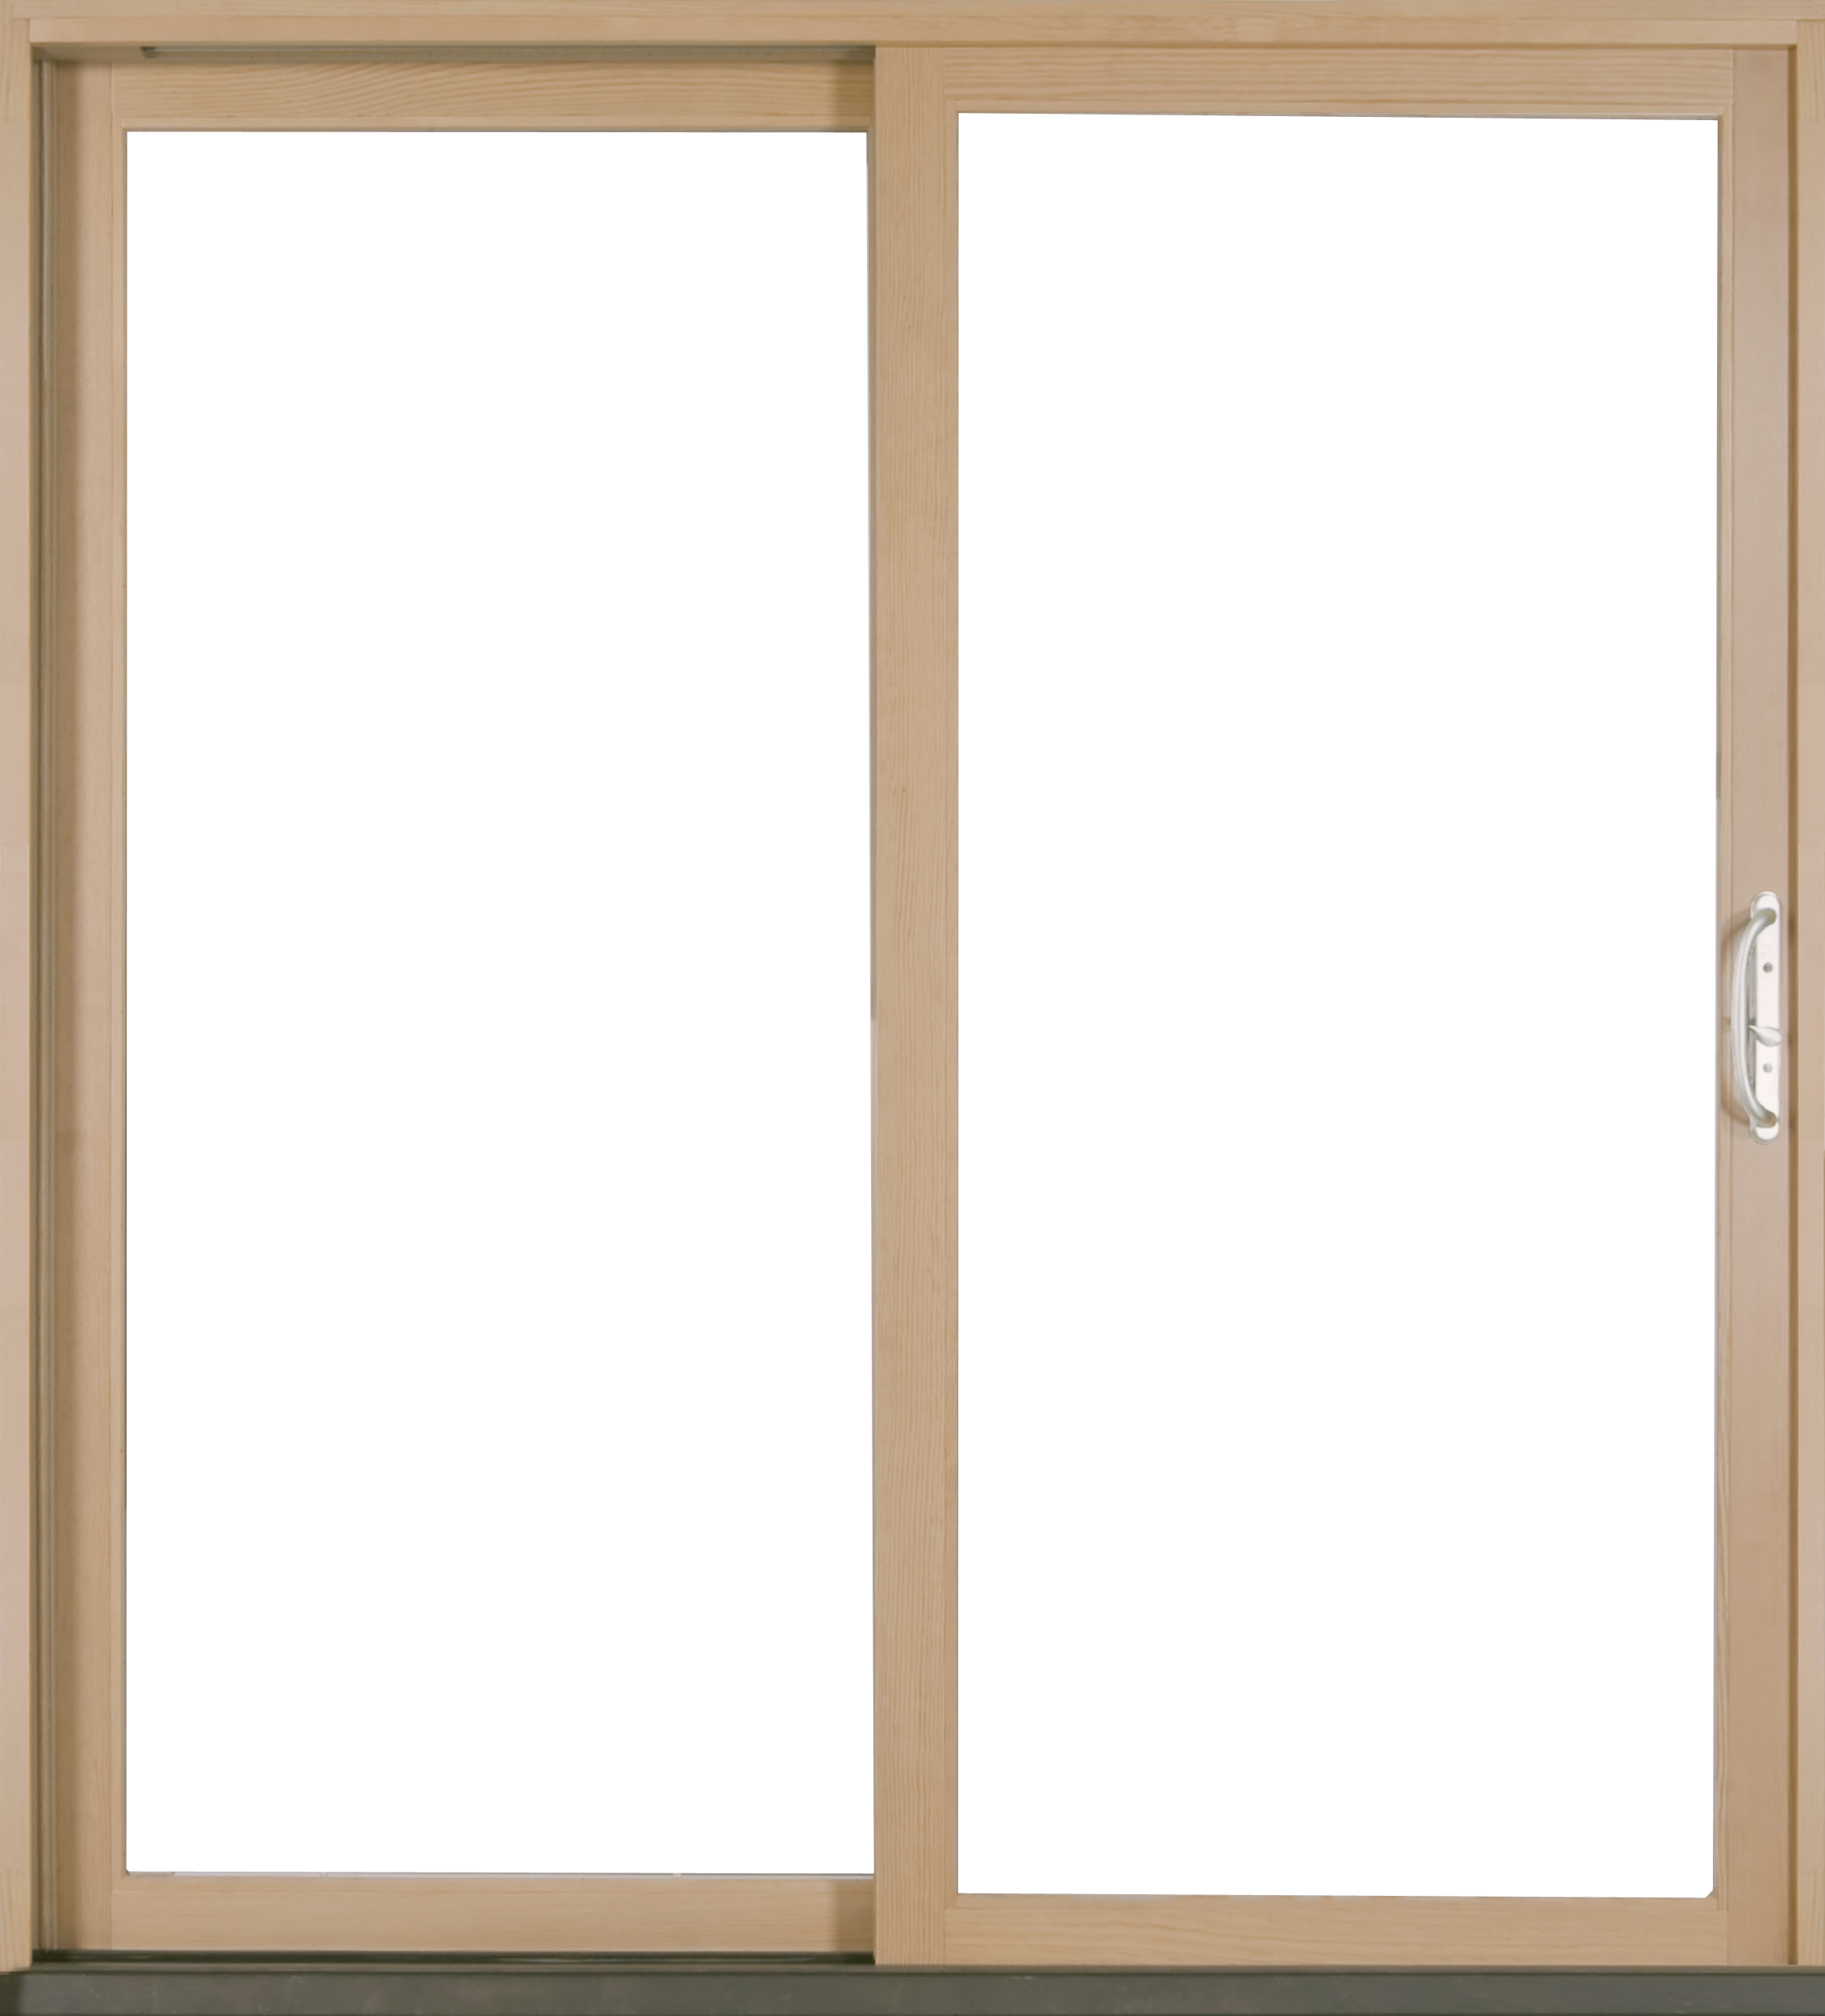 Builders Wood Sliding Patio Door | JELD WEN Windows U0026 Doors